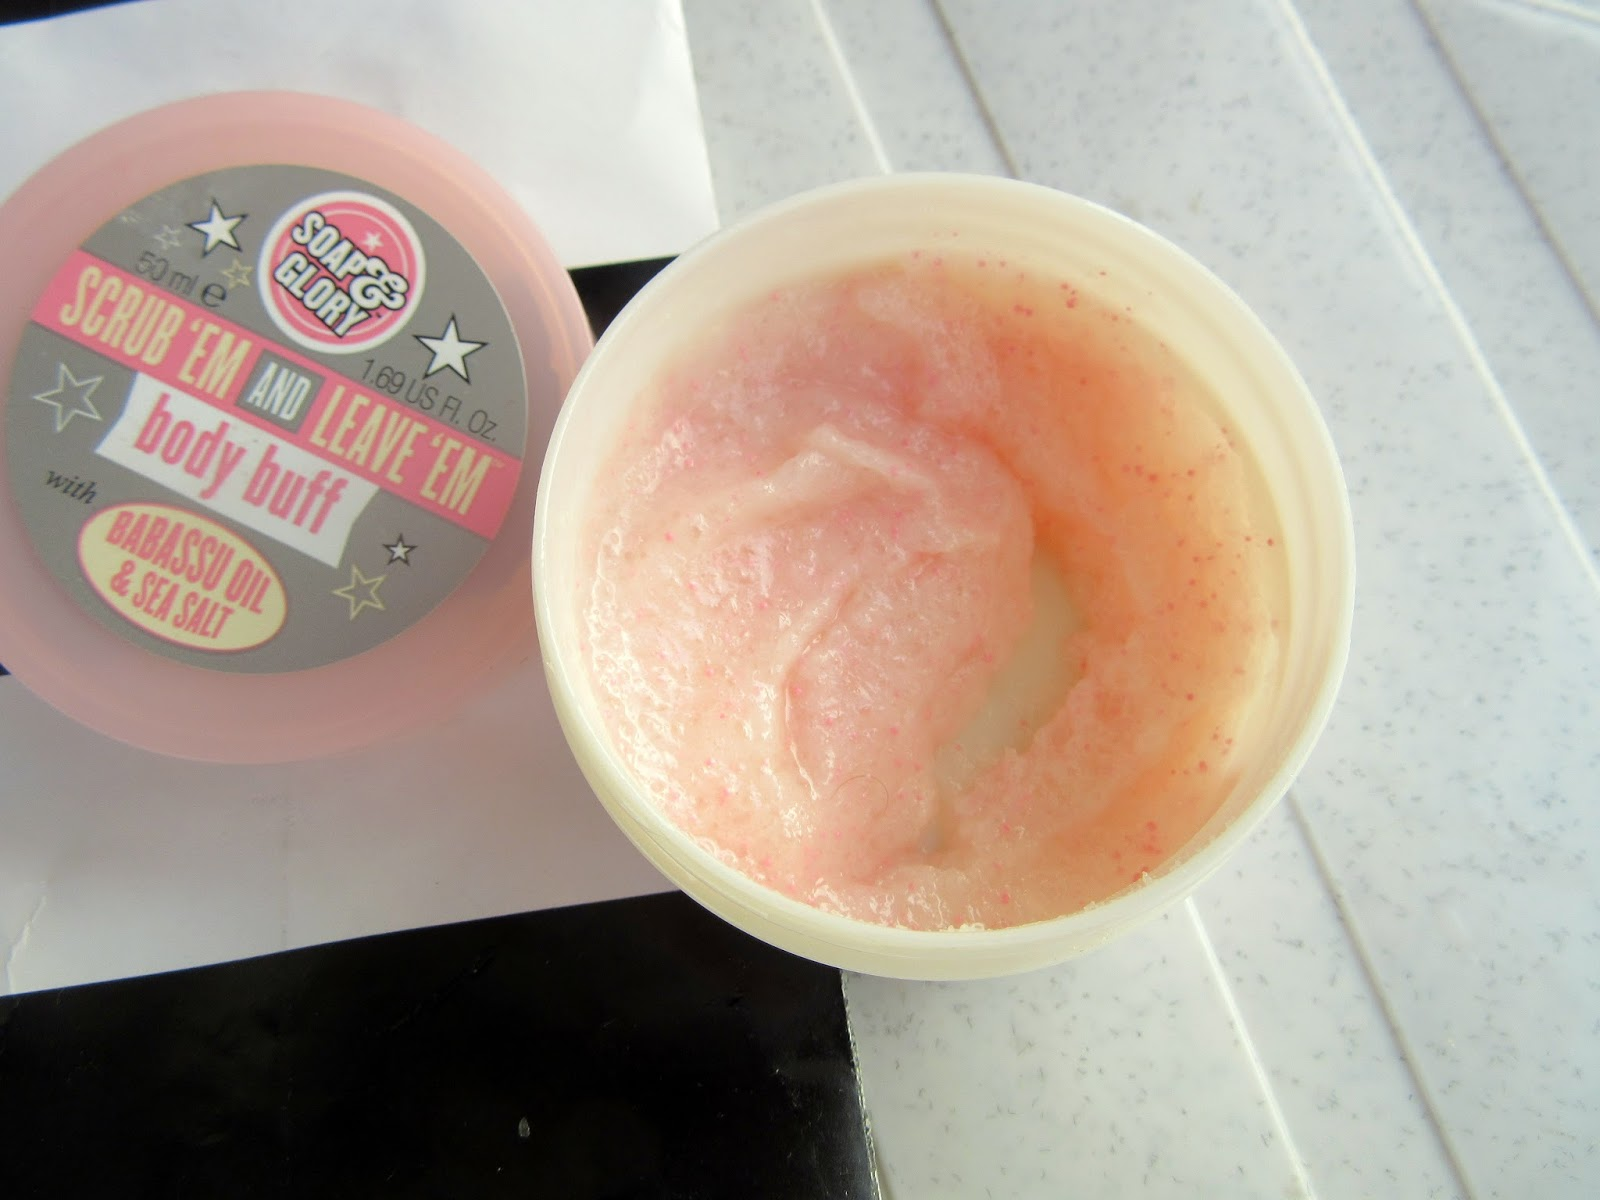 Soap & Glory SCRUB 'EM AND LEAVE 'EM Body Buff Review